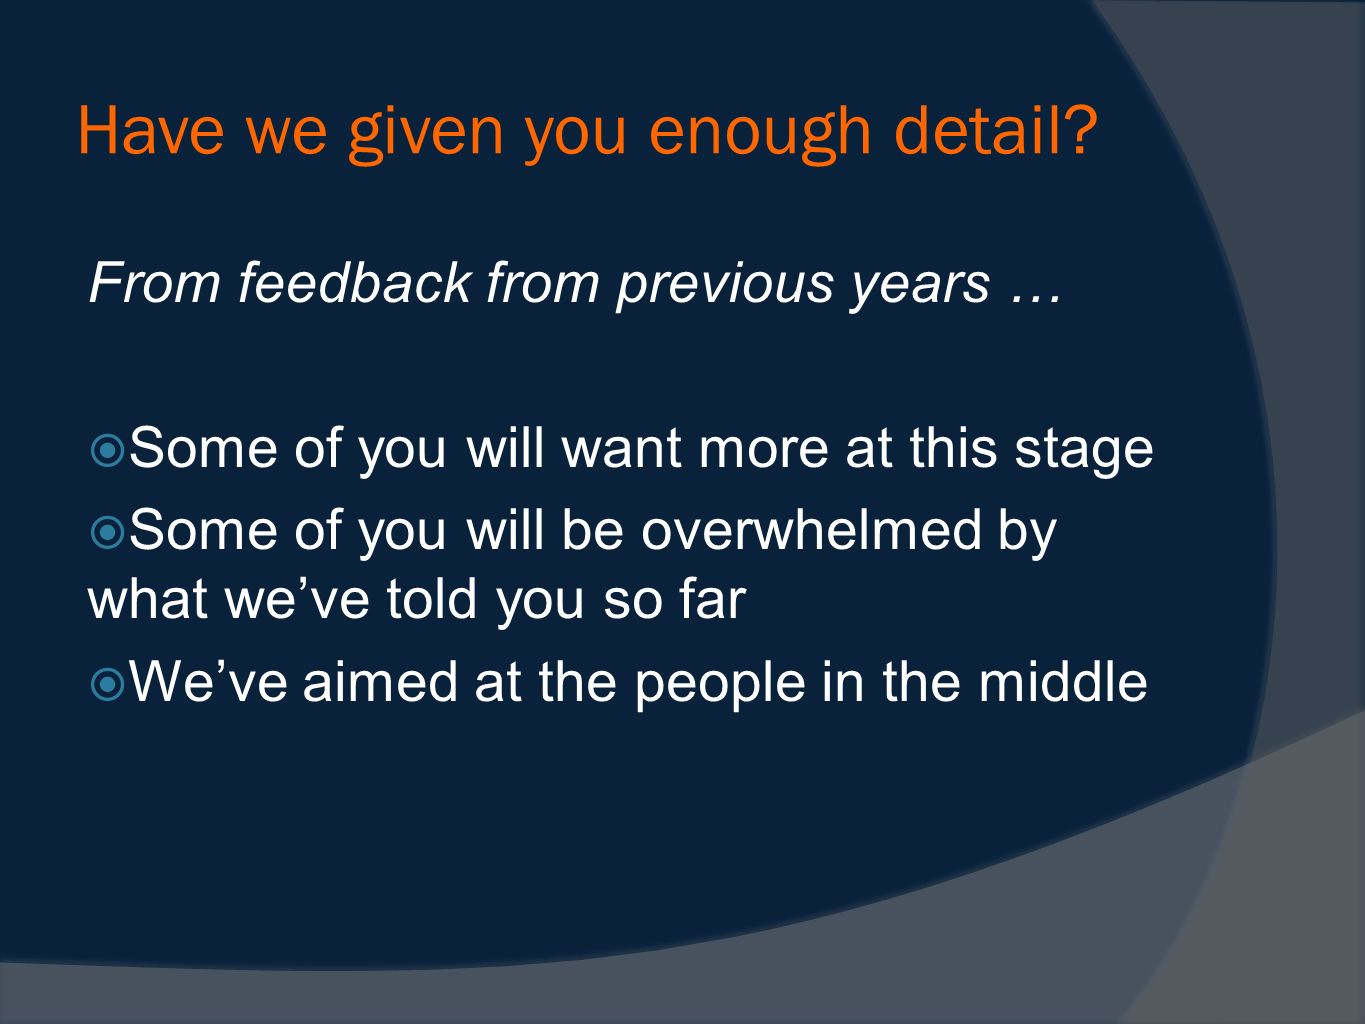 Have we given you enough detail? From feedback from previous years … Some of you will want more at this stage Some of you will be overwhelmed by what